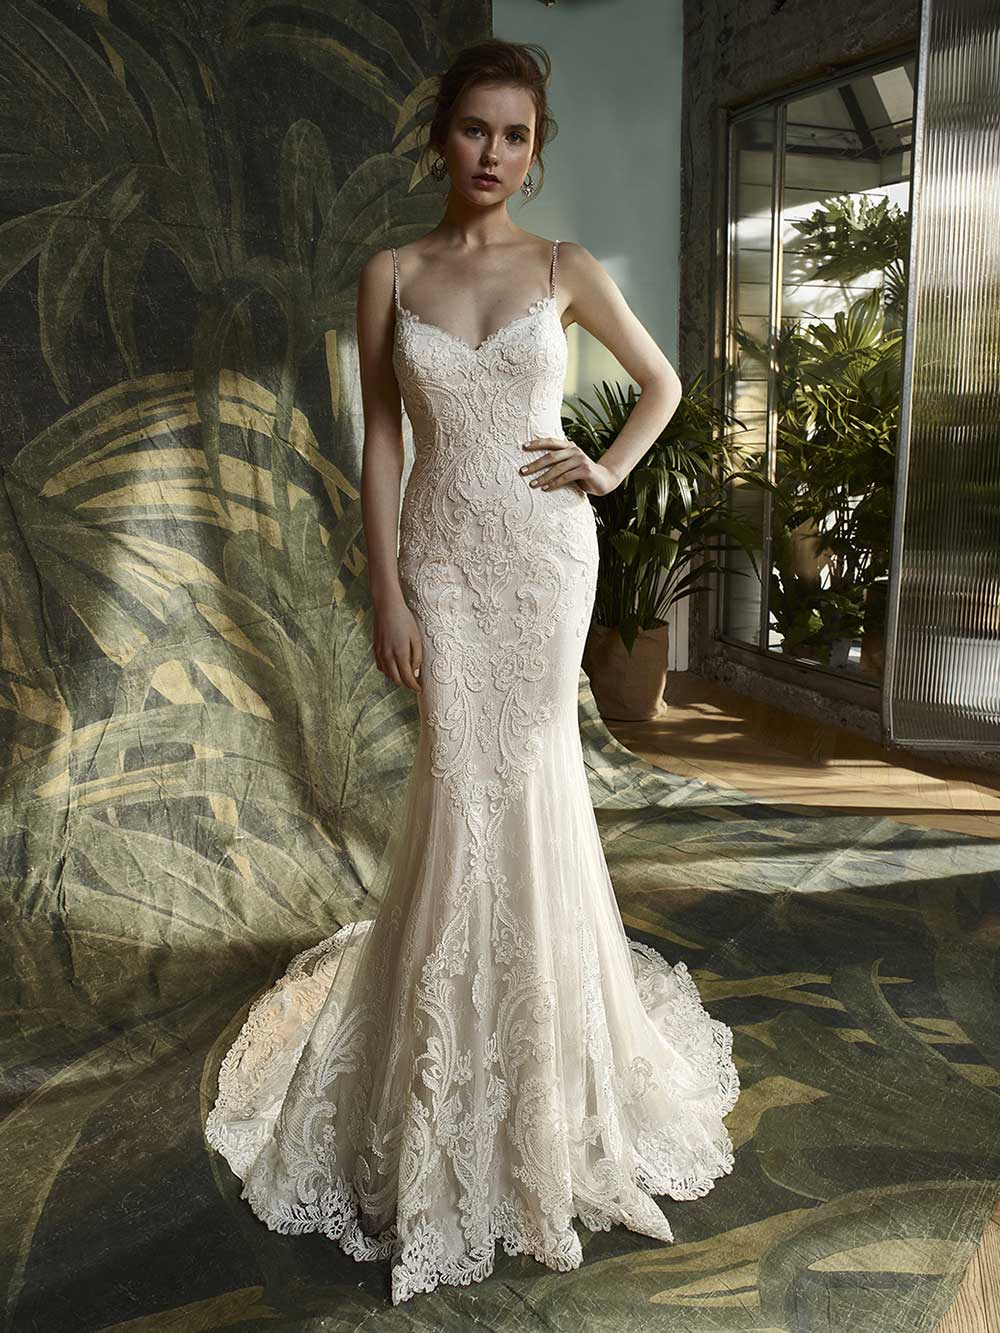 0d4f8080ddd5 Wedding Dresses from Enzoani Blue | Upstate NY Formal Dresses